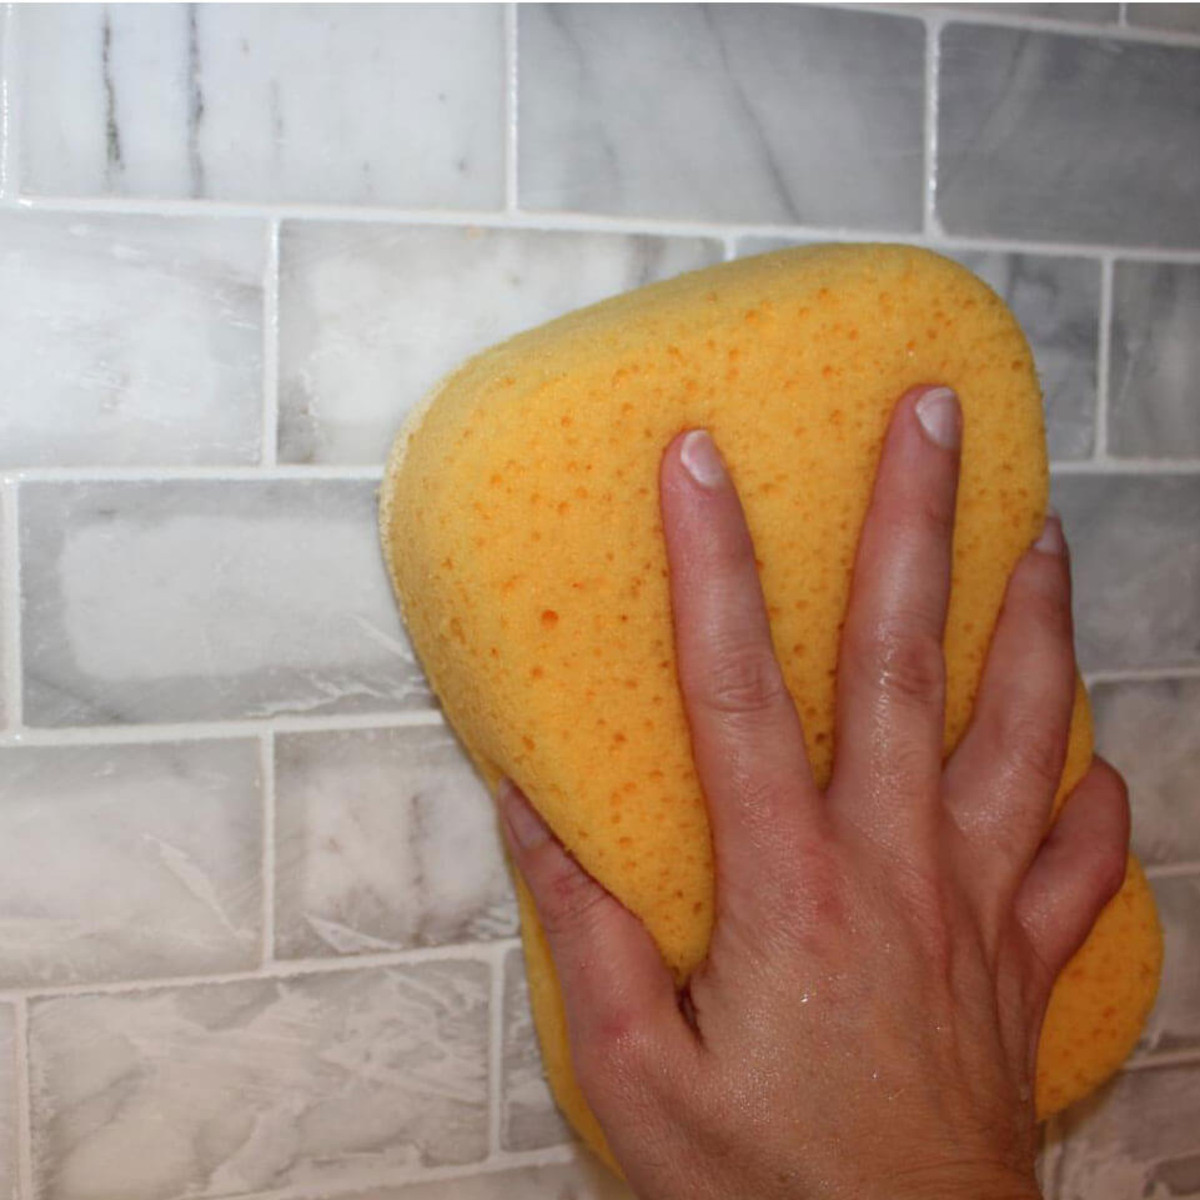 hydrophilic grout cleaning sponge